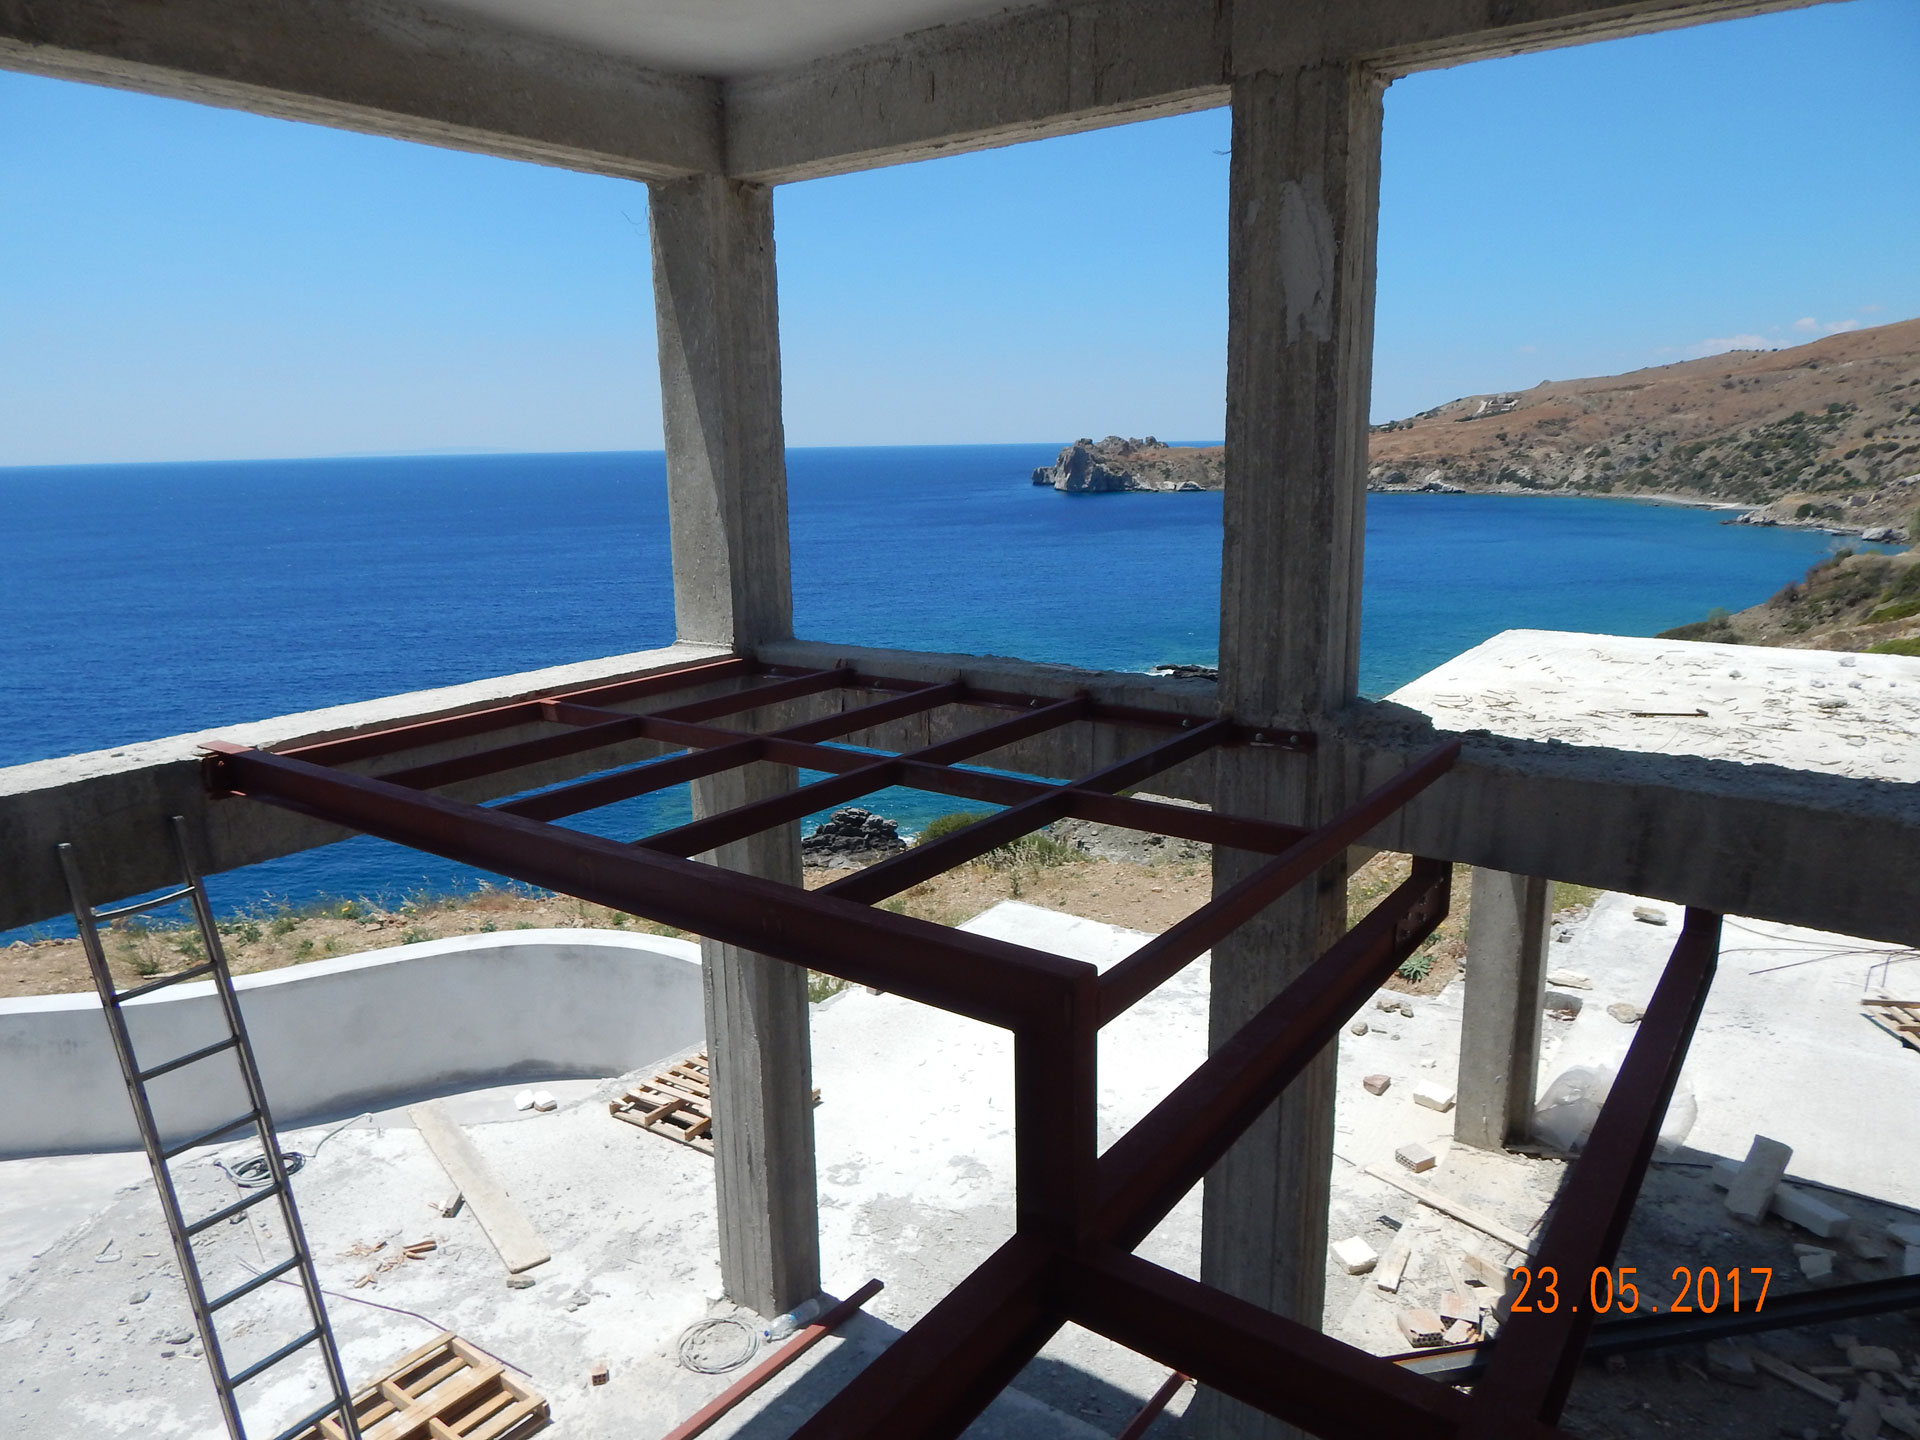 Luxury Villa Agios Pavlos Metallic Loft Sea View